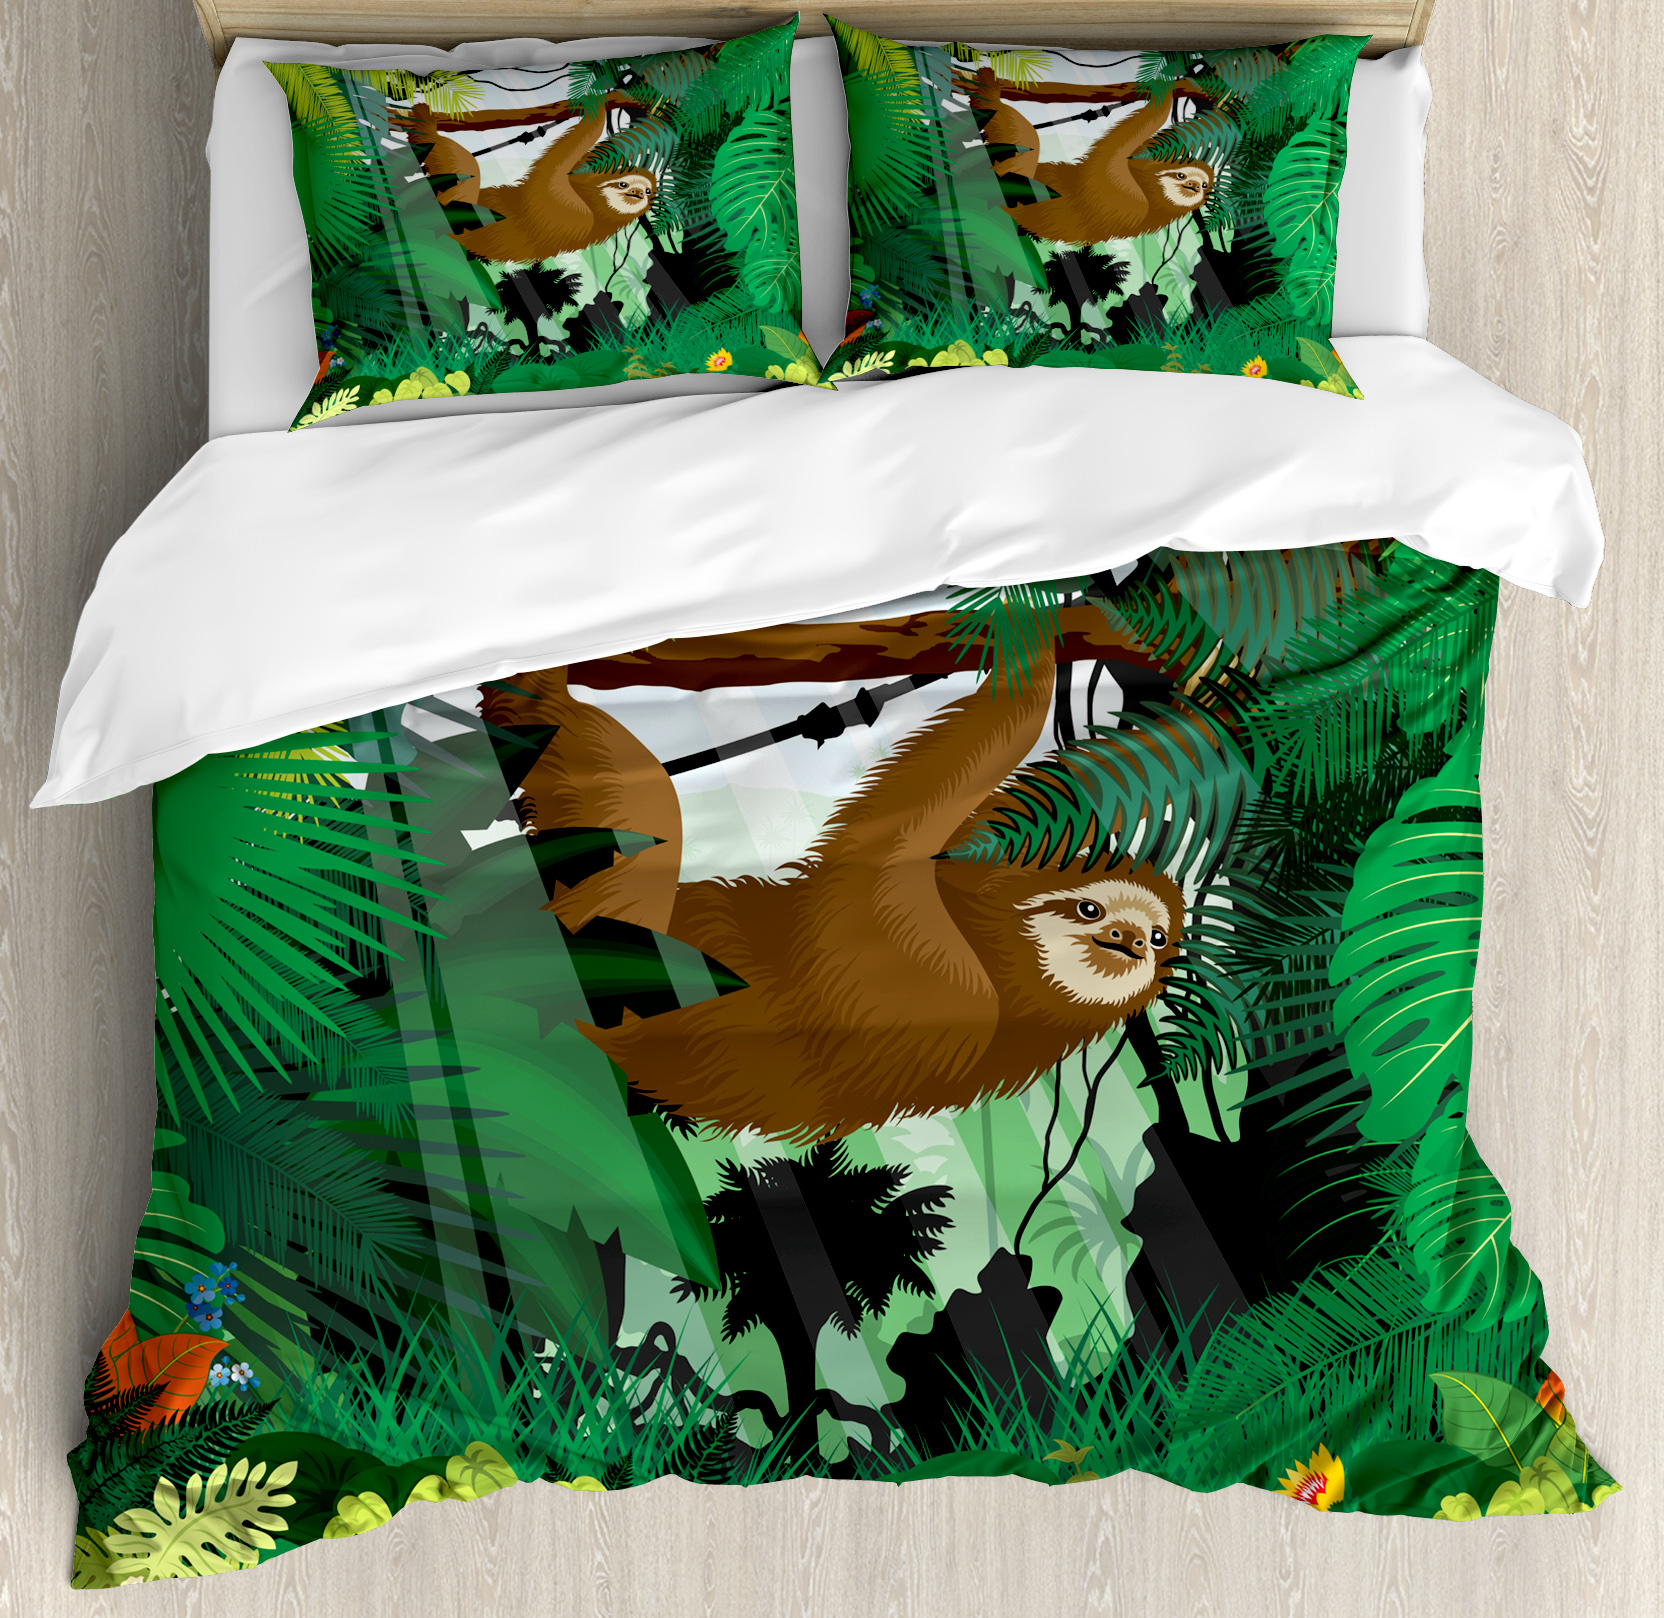 Sloth Queen Size Duvet Cover Set, Vibrant Exotic Rainforest with Various Plants and Sloth Hanging on a Tree Wildlife, Decorative 3 Piece Bedding Set with 2 Pillow Shams, Green Brown, by Ambesonne nev_37873_queen